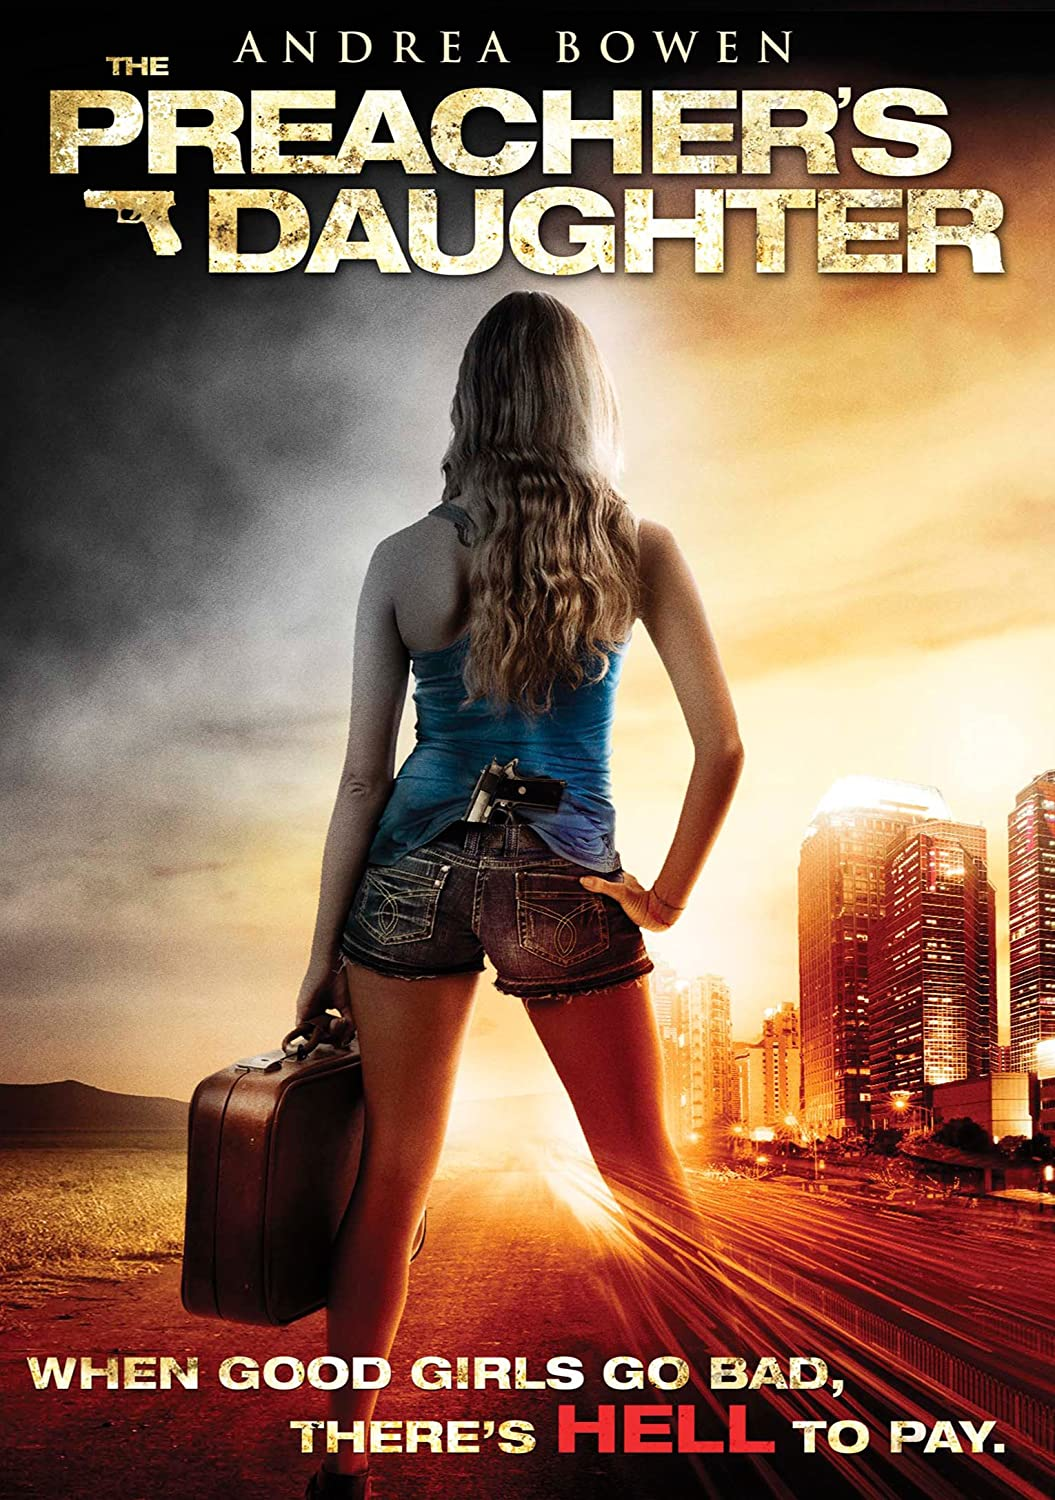 The Preacher's Daughter 2016 / The preacher is based on the chords of show me the way to go home, which silver often used to end his concerts.